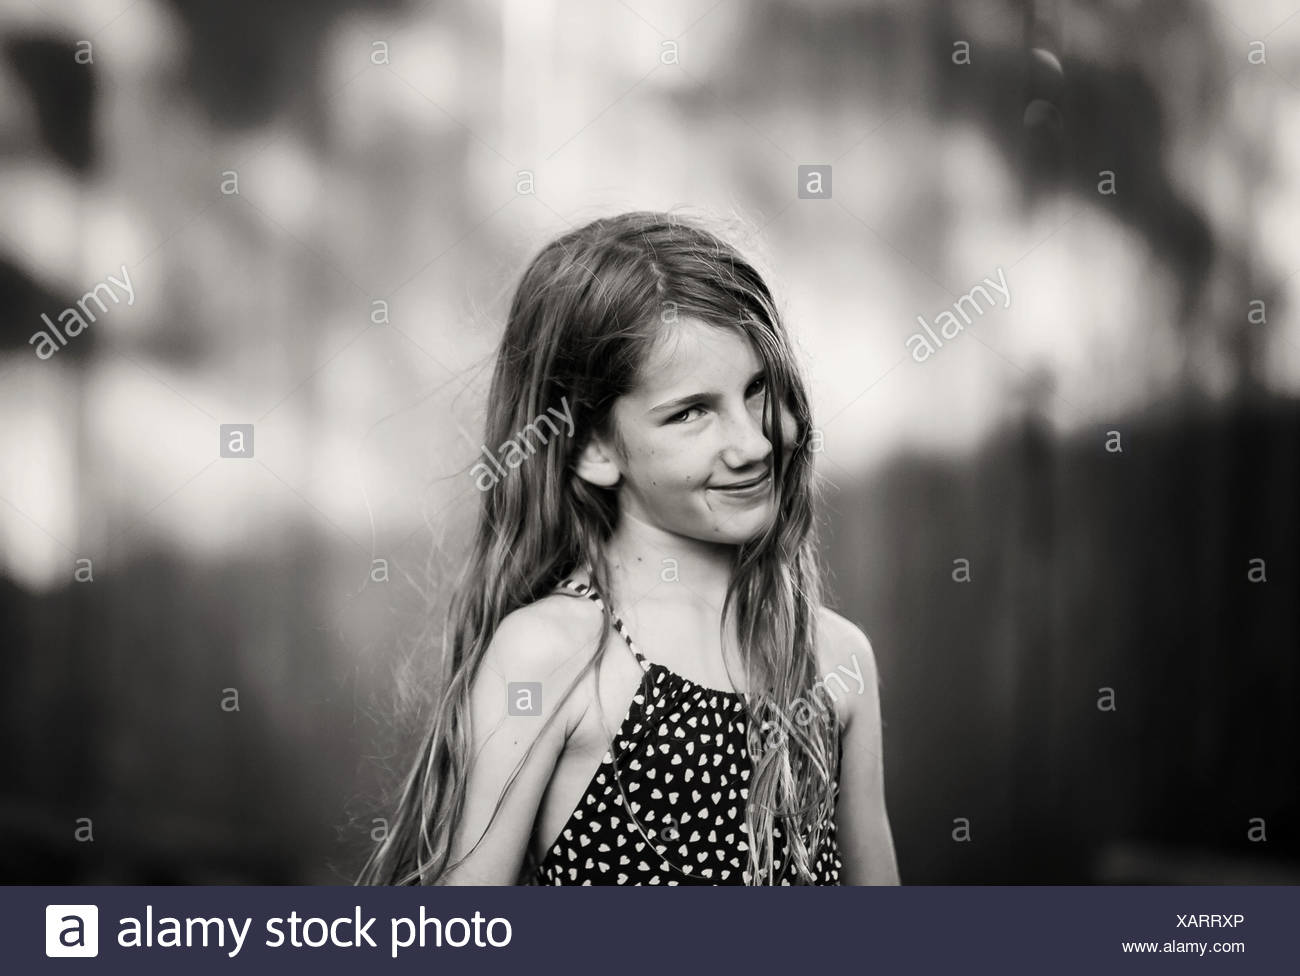 Portrait of a smiling girl - Stock Image